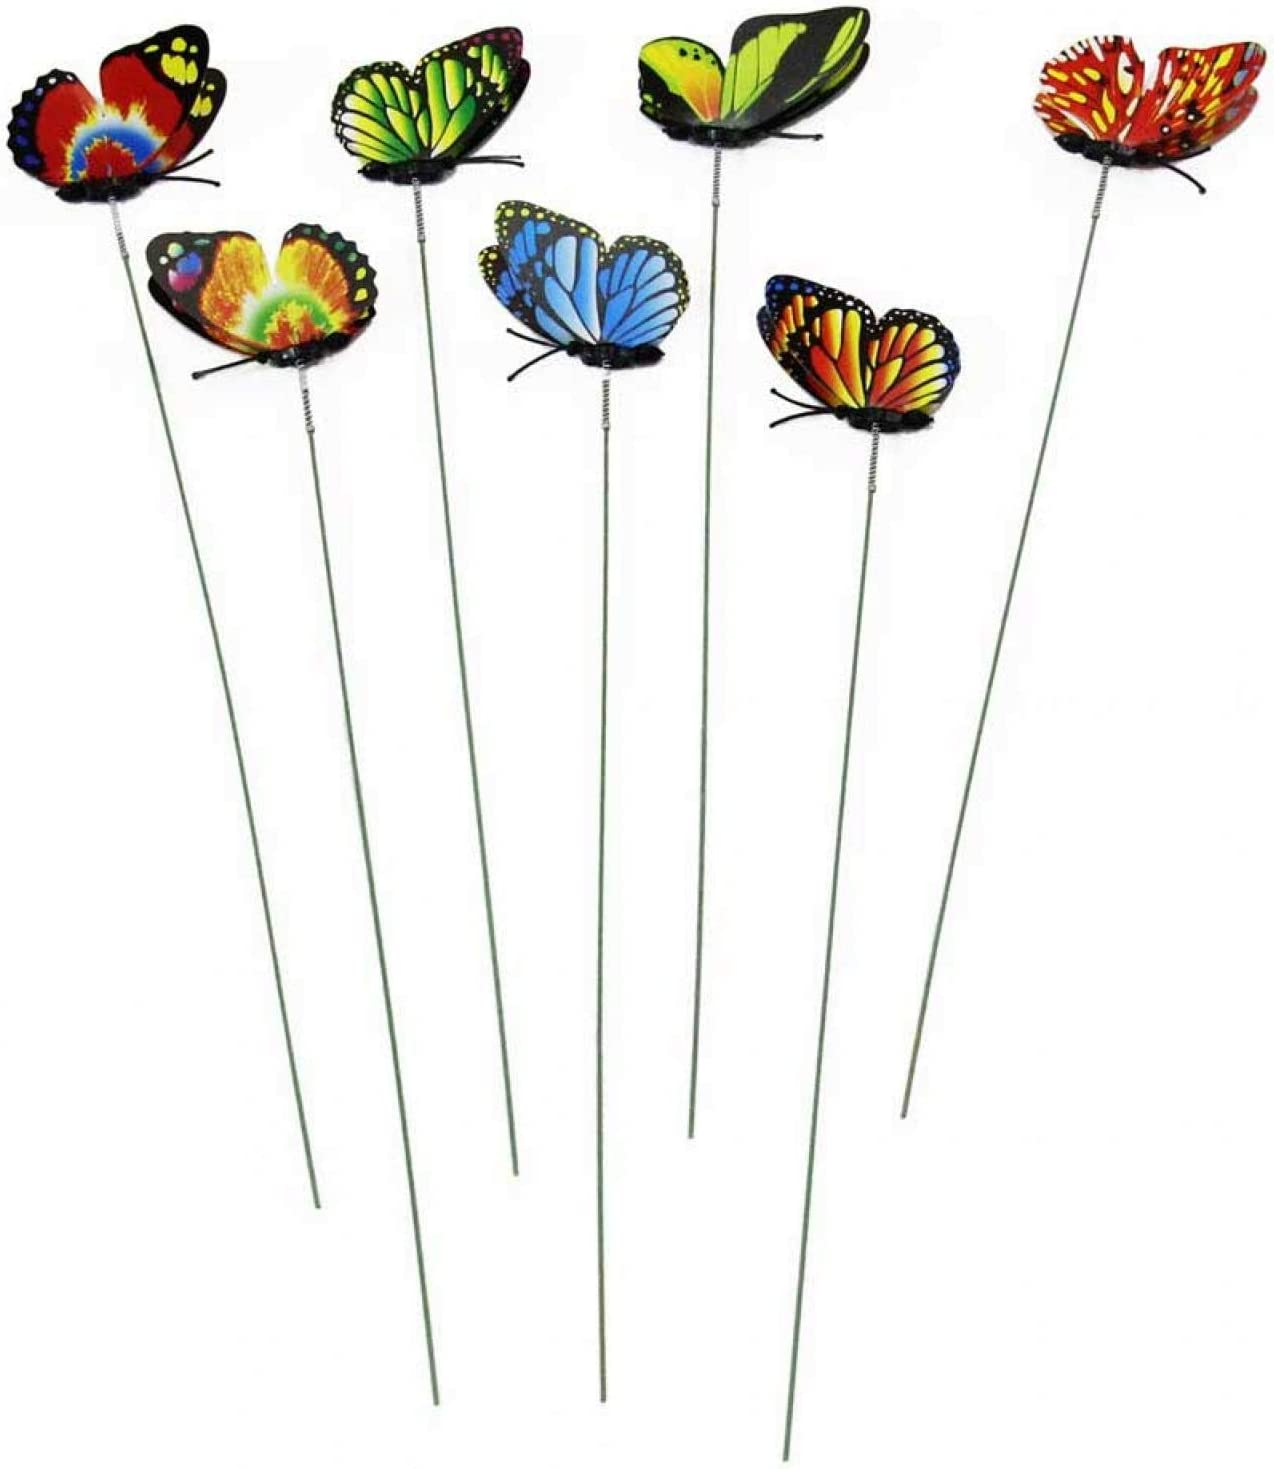 BWWNBY 10pcs On Sticks Artificial Garden Decor Craft Outdoor Yard Lawn Butterfly Stakes